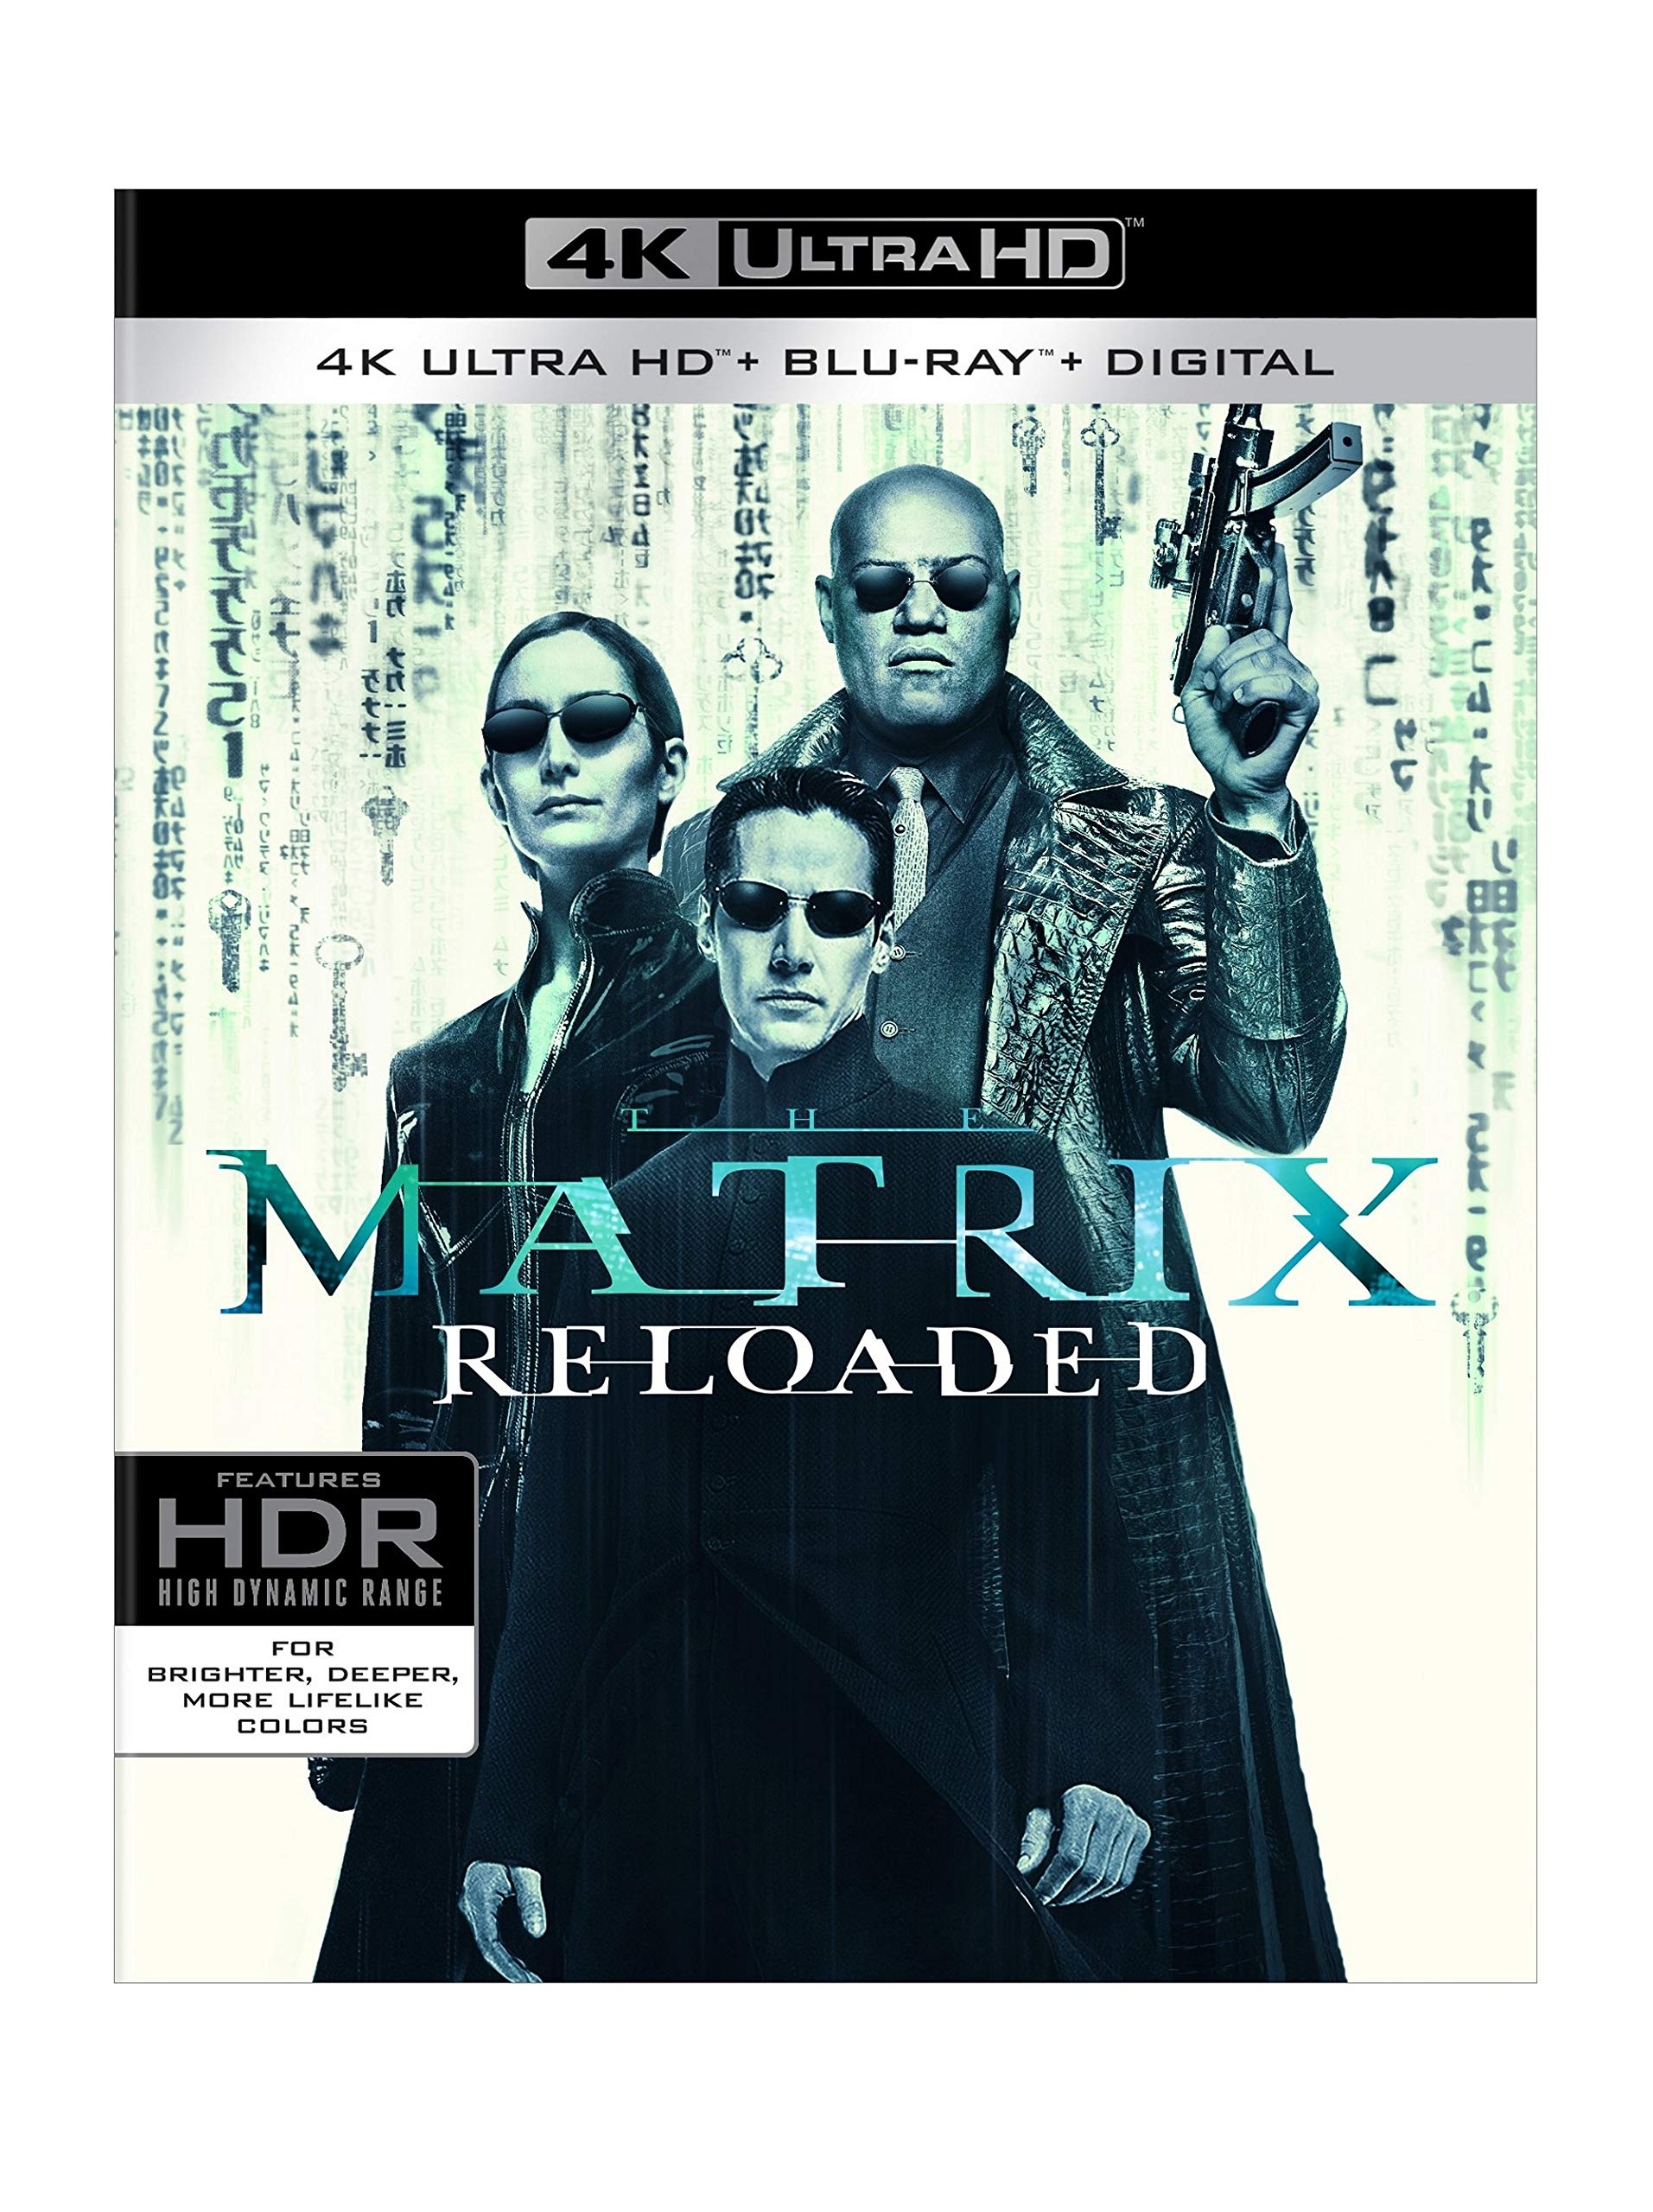 4K Blu-ray : The Matrix Reloaded (With Blu-ray, Black, 4K Mastering, Ultraviolet Digital Copy, 3 Pack)